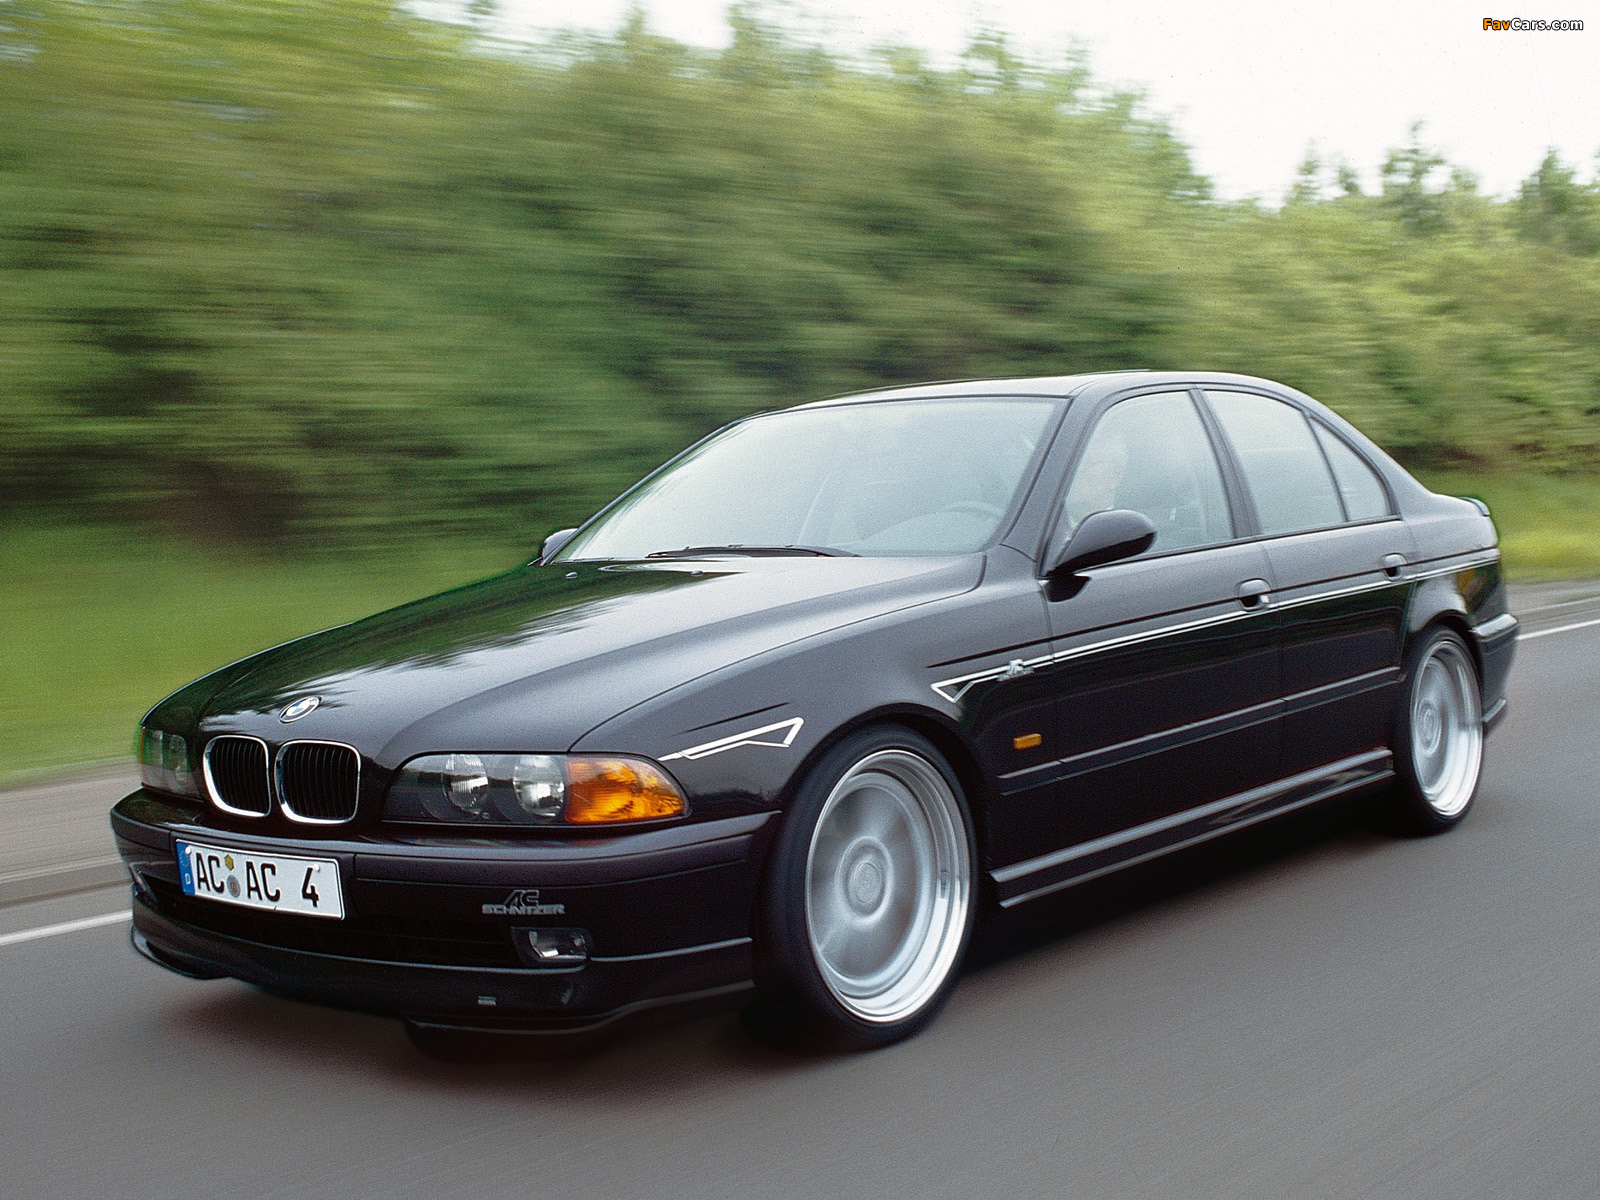 wallpapers_bmw_5_series_e39_1996_1.jpg